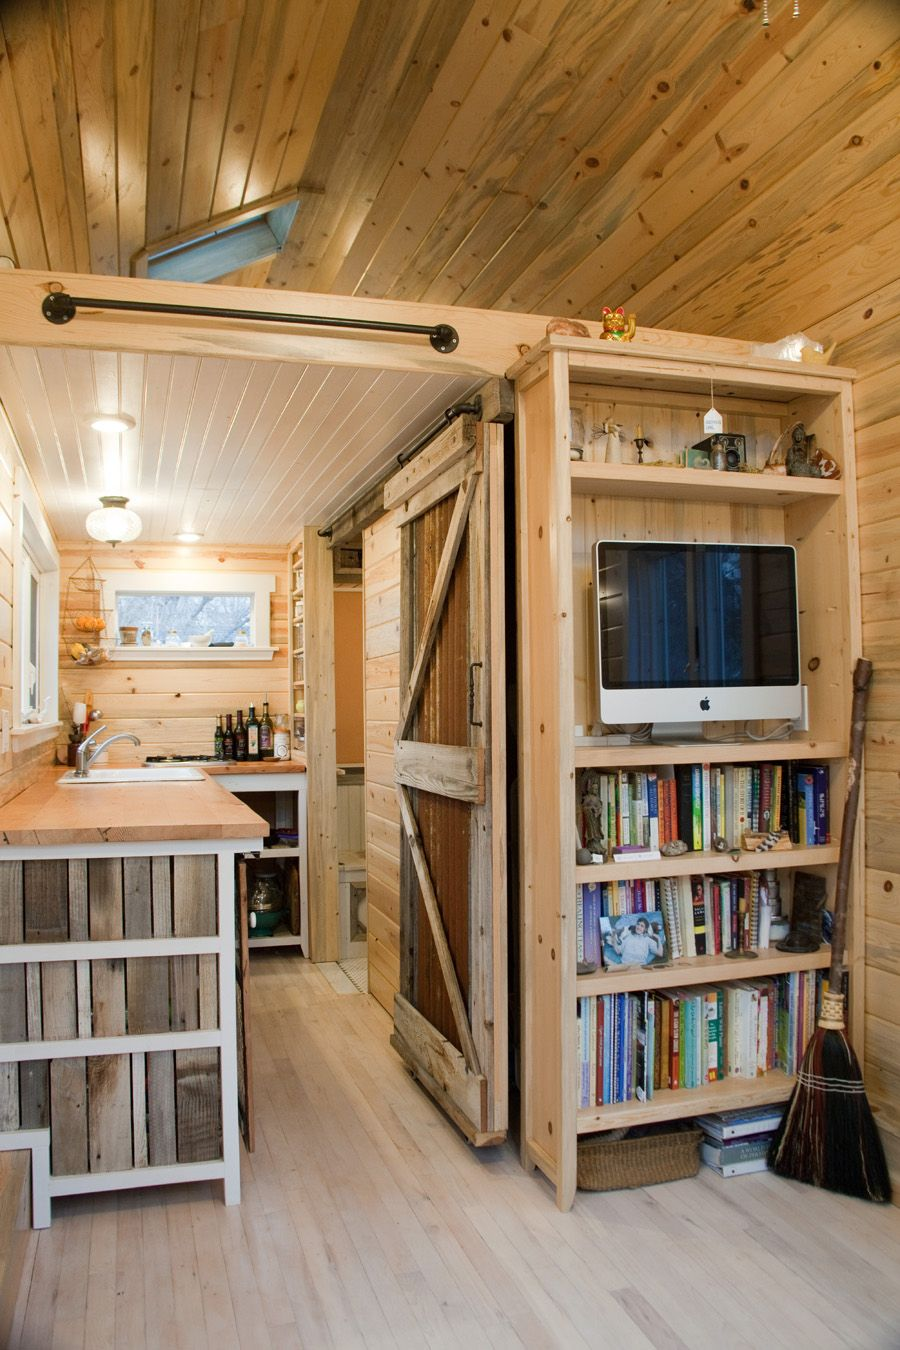 Our tiny home a 230 square feet tiny house on wheels in for Interior designs reno nv